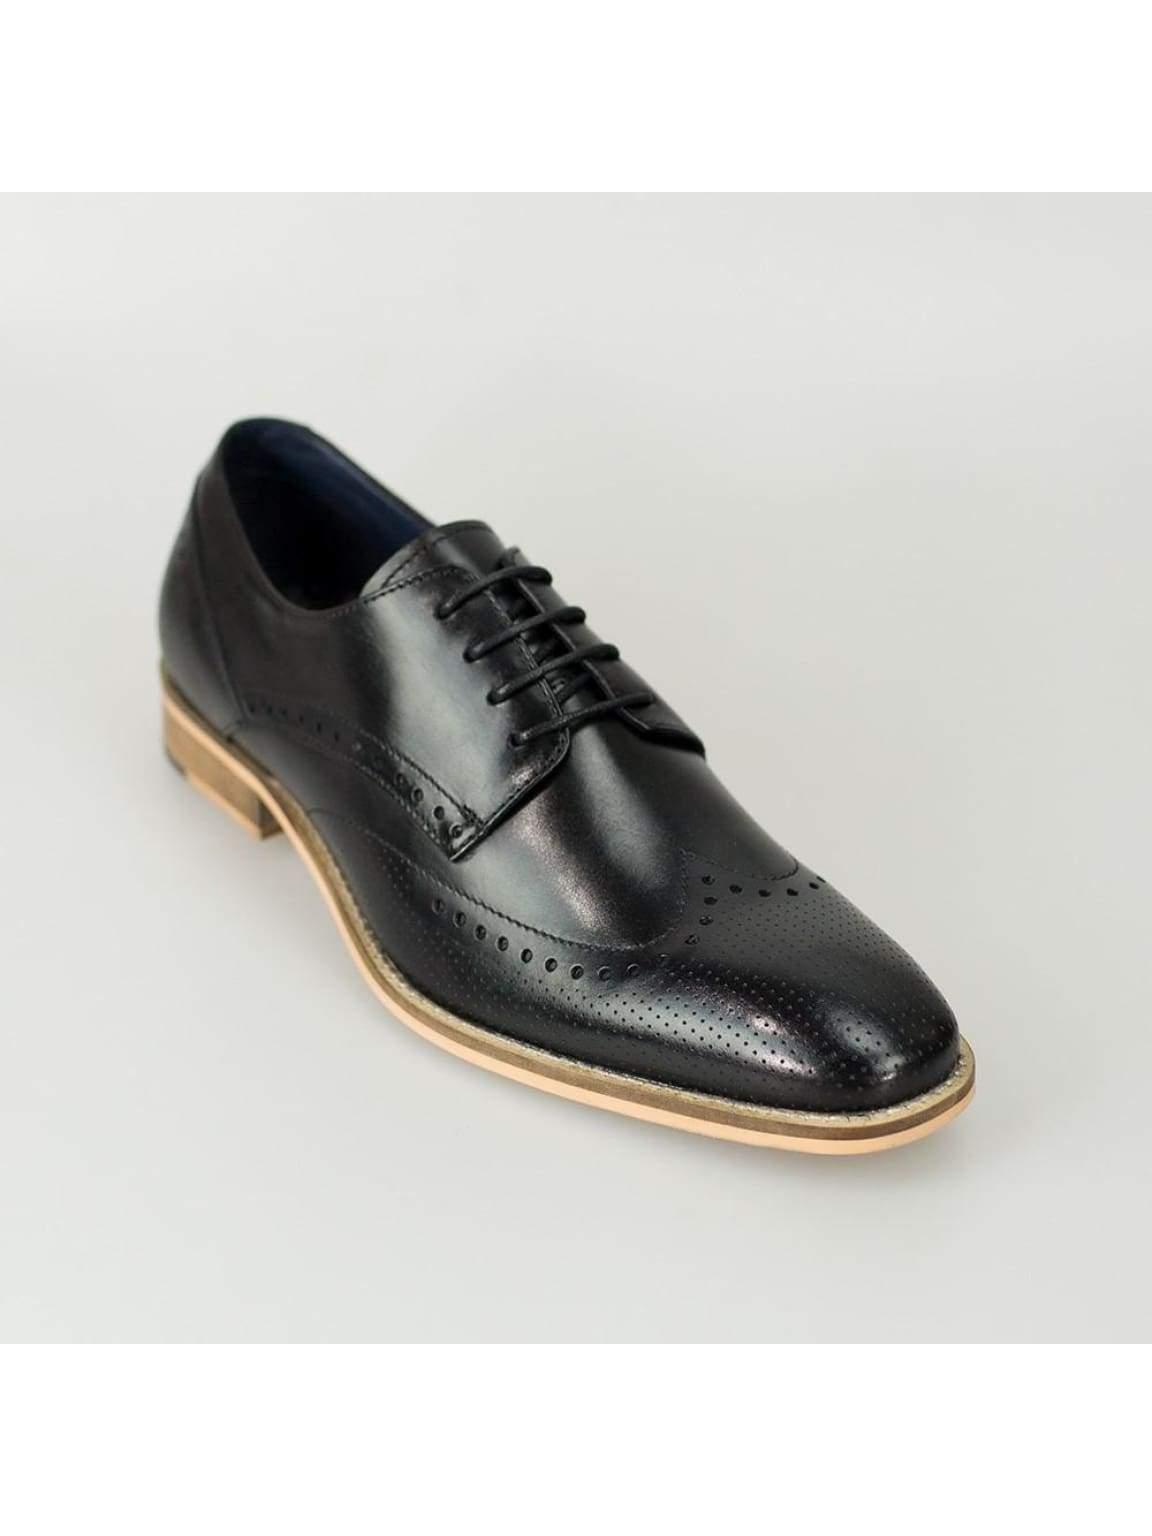 Cavani Rome Black Mens Leather Shoes - Shoes